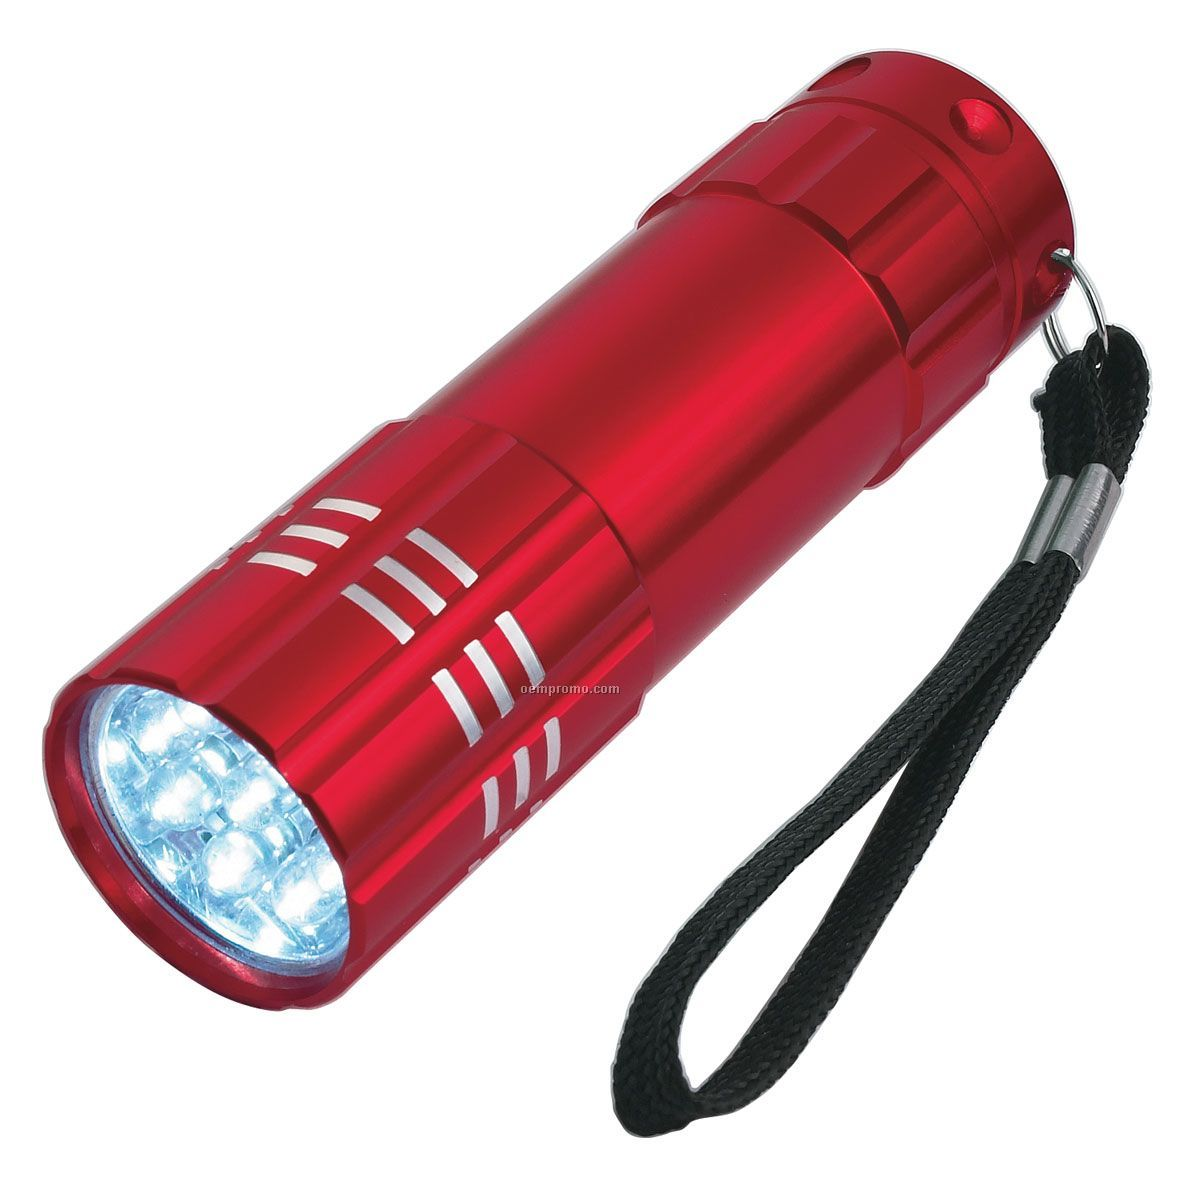 Light Up Flashlight W/ 9 Super Bright Leds - Red